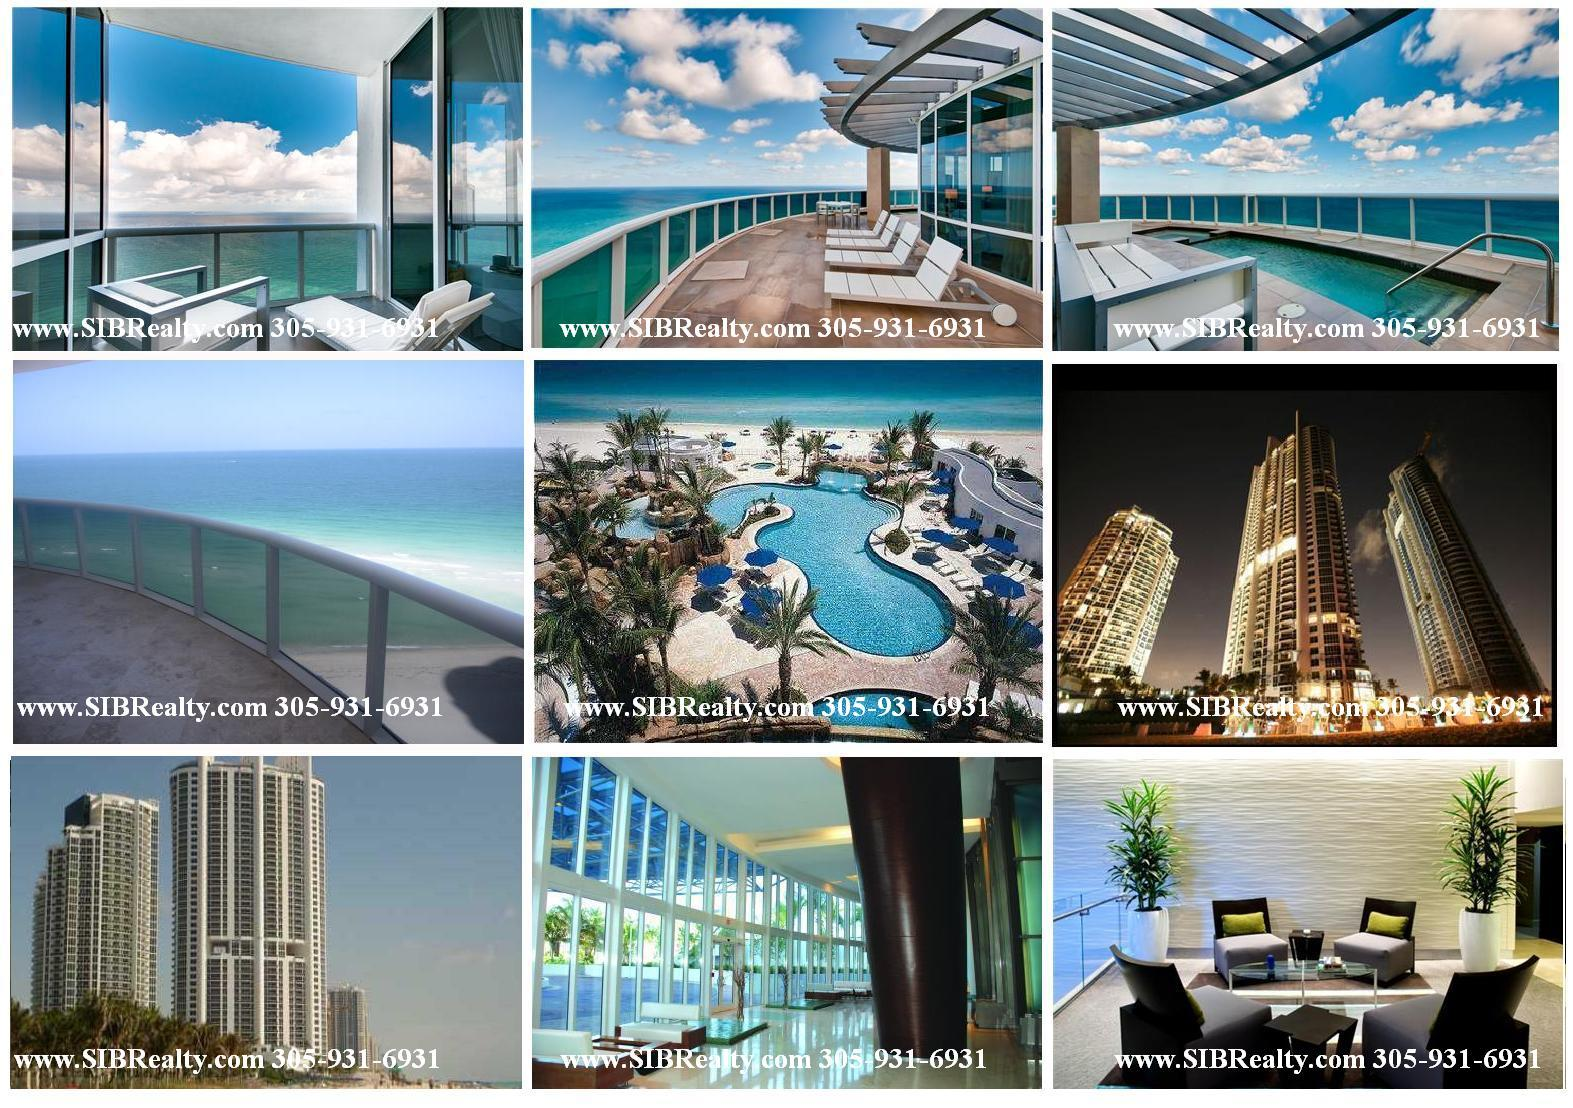 Trump Palace Sunny Isles Beach condo for sale and rent with Valeria Mola Realtor